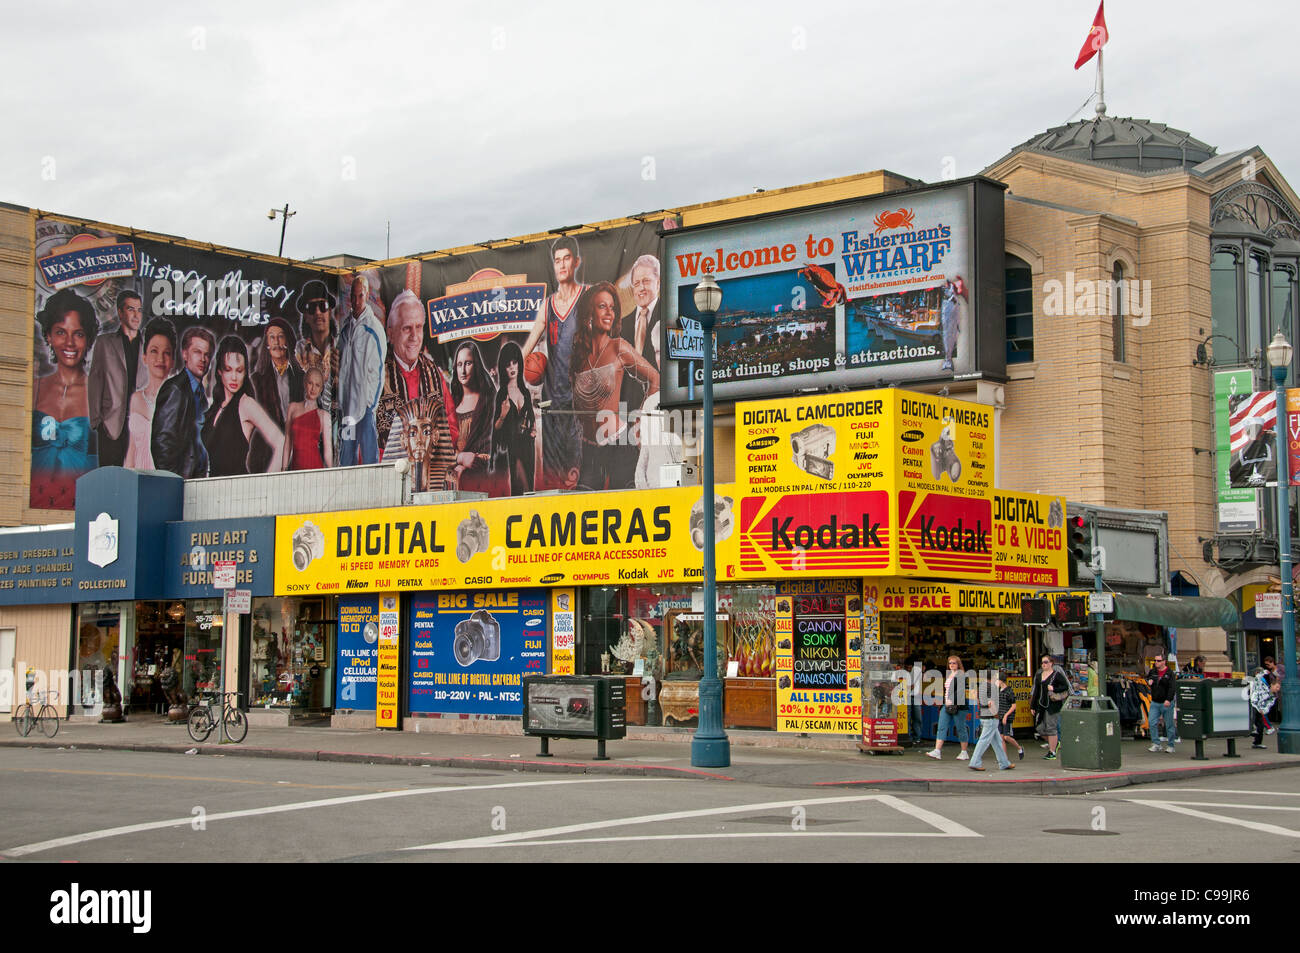 Kodak Digital Camera Cameras Billboard Sign Photo Fishermans Fisherman's Wharf San Francisco California - Stock Image